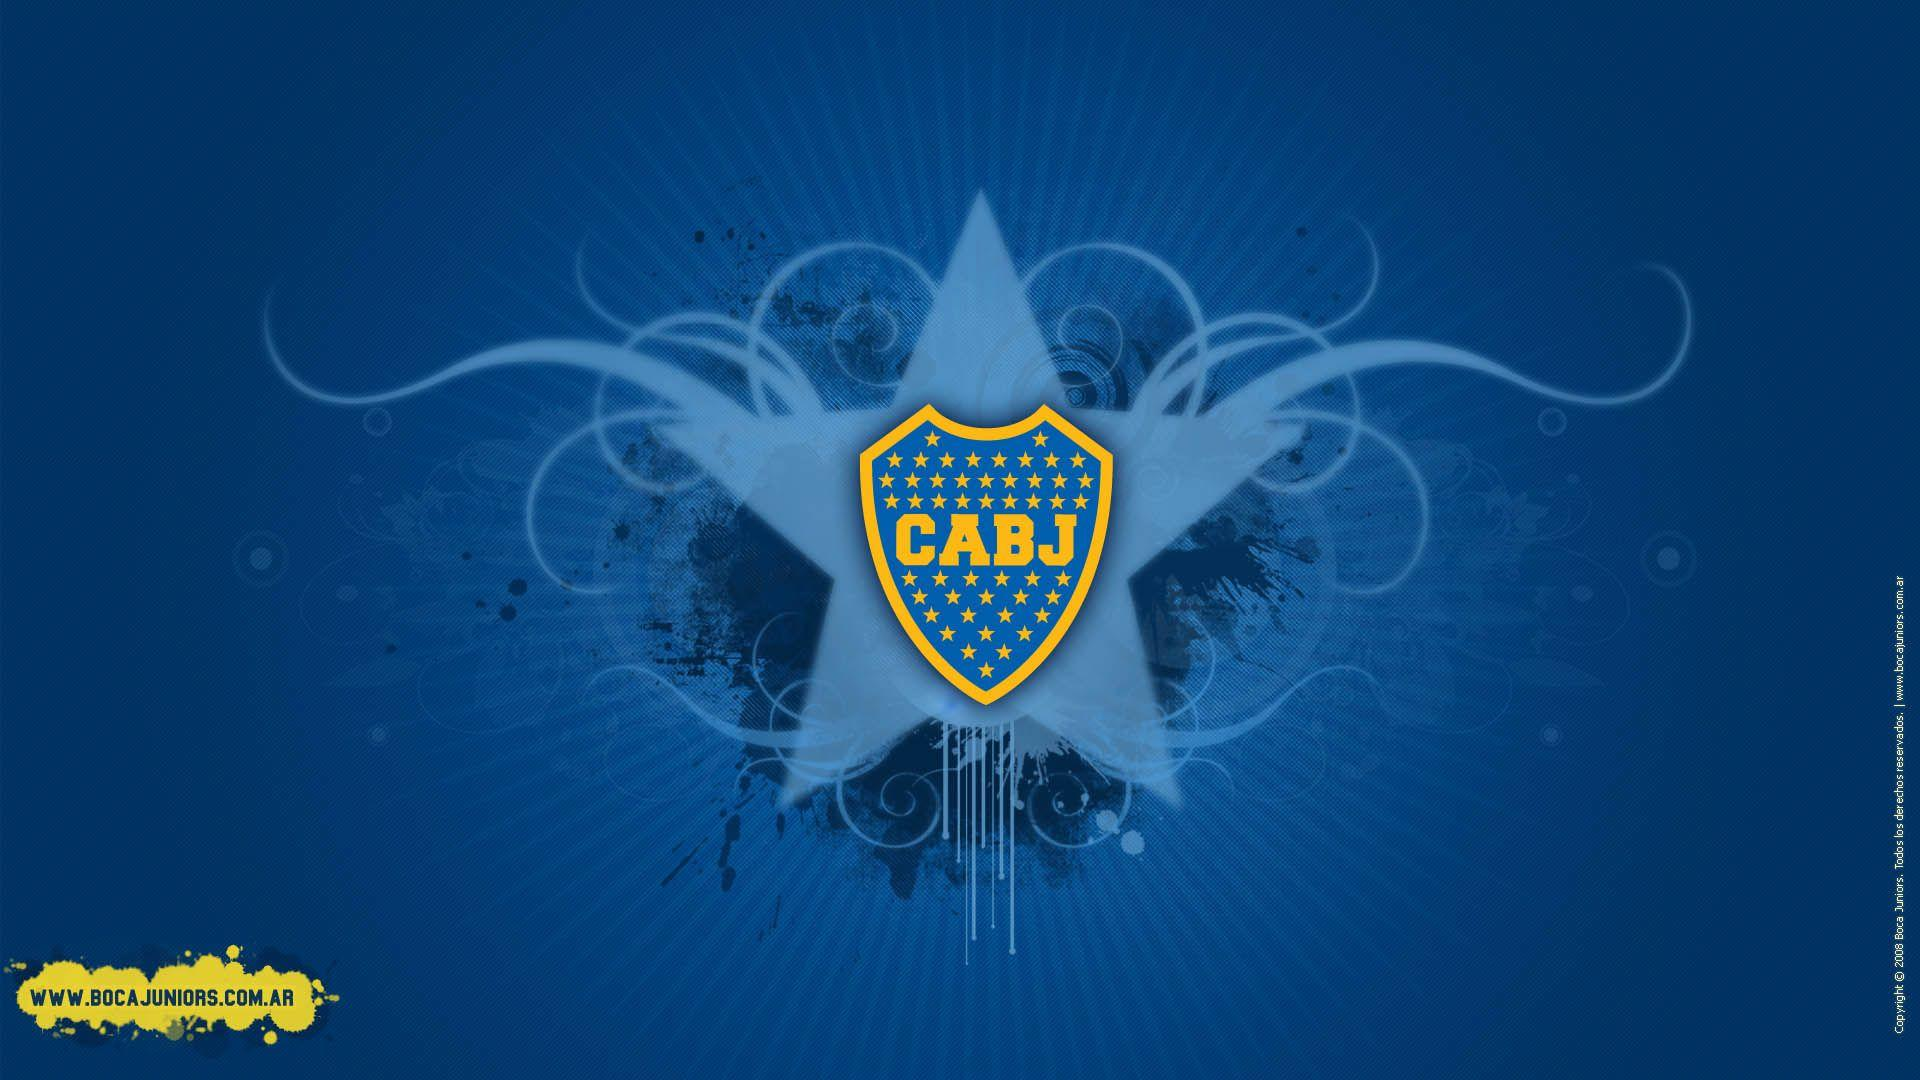 Wallpaper Boca Juniors Free Download #10053 Wallpaper | HDwallsize.com